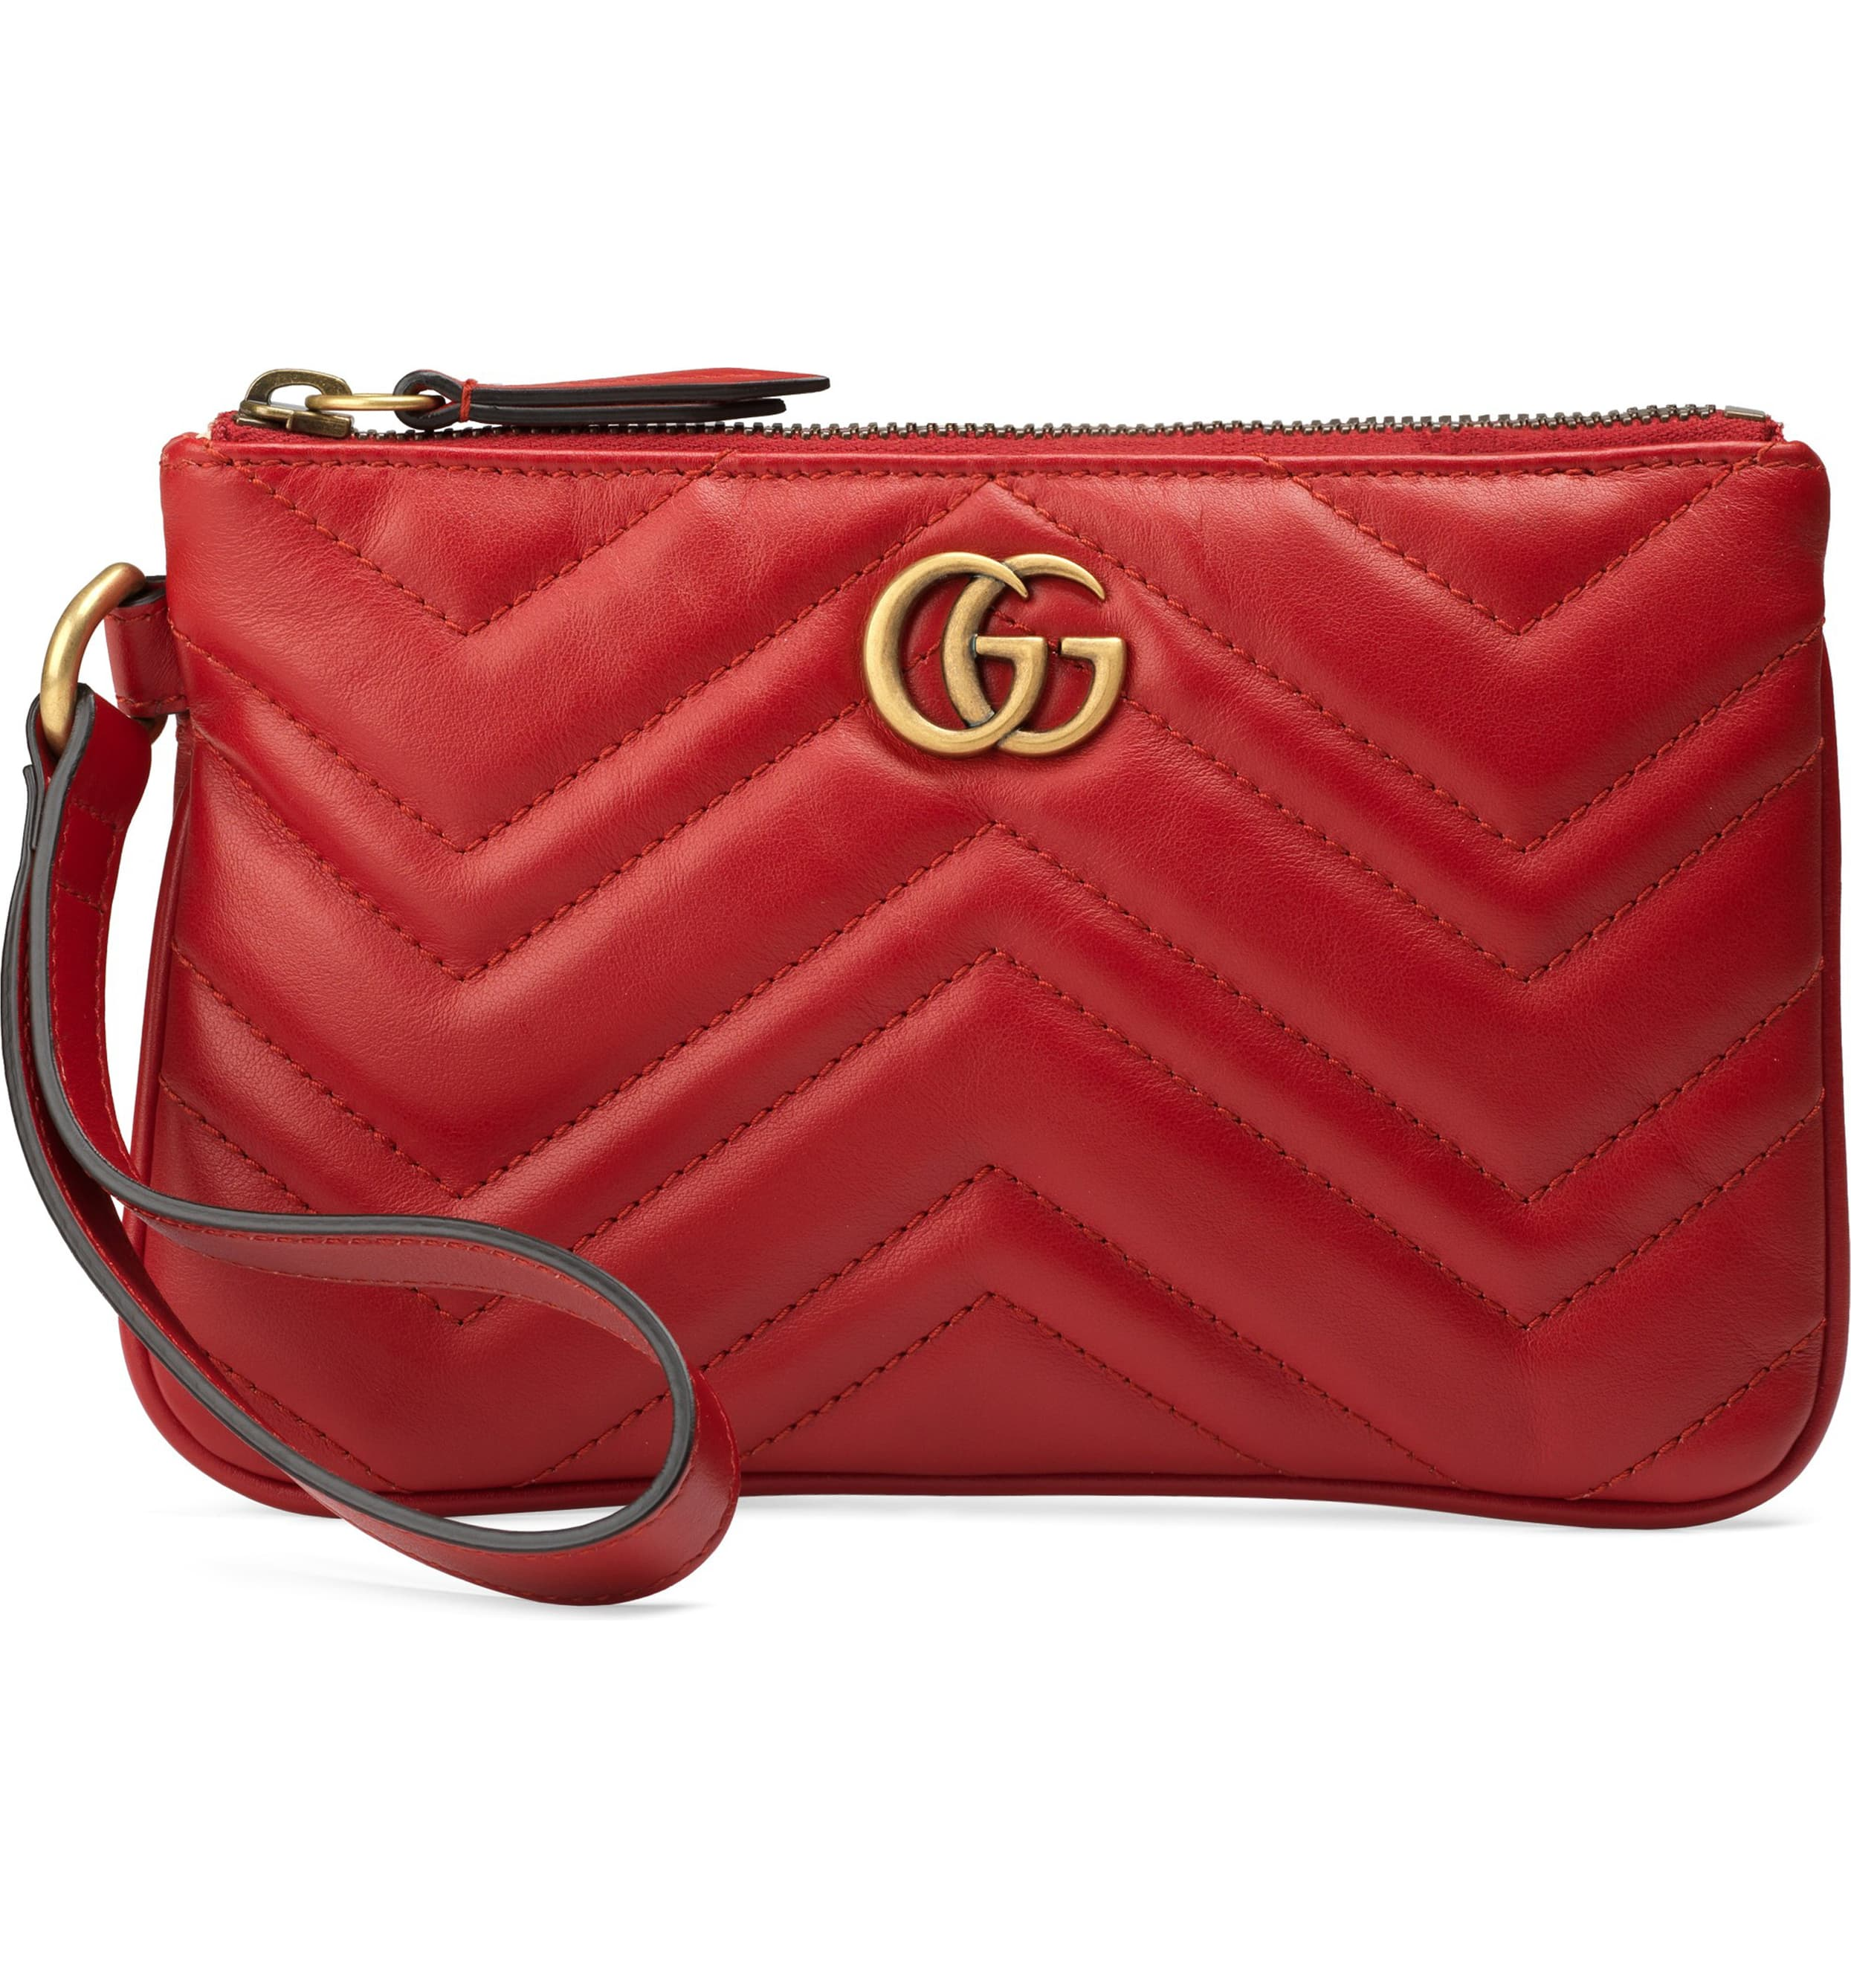 "<p>Double-G hardware inspired by a '70s archival design brands this leather wristlet textured with matelassé chevron quilting and a stitched heart at the back. <a  href=""https://shop.nordstrom.com/s/gucci-quilted-leather-wristlet/5452888/full?origin=category-personalizedsort&breadcrumb=Home%2FHome%20%26%20Gifts%2FGifts%2FValentine%27s%20Day&color=hibiscus%20red"" target=""_blank"" title=""https://shop.nordstrom.com/s/gucci-quilted-leather-wristlet/5452888/full?origin=category-personalizedsort&breadcrumb=Home%2FHome%20%26%20Gifts%2FGifts%2FValentine%27s%20Day&color=hibiscus%20red"">Shop it{&nbsp;}</a>- $590 (Image: Nordstrom){&nbsp;}</p>"